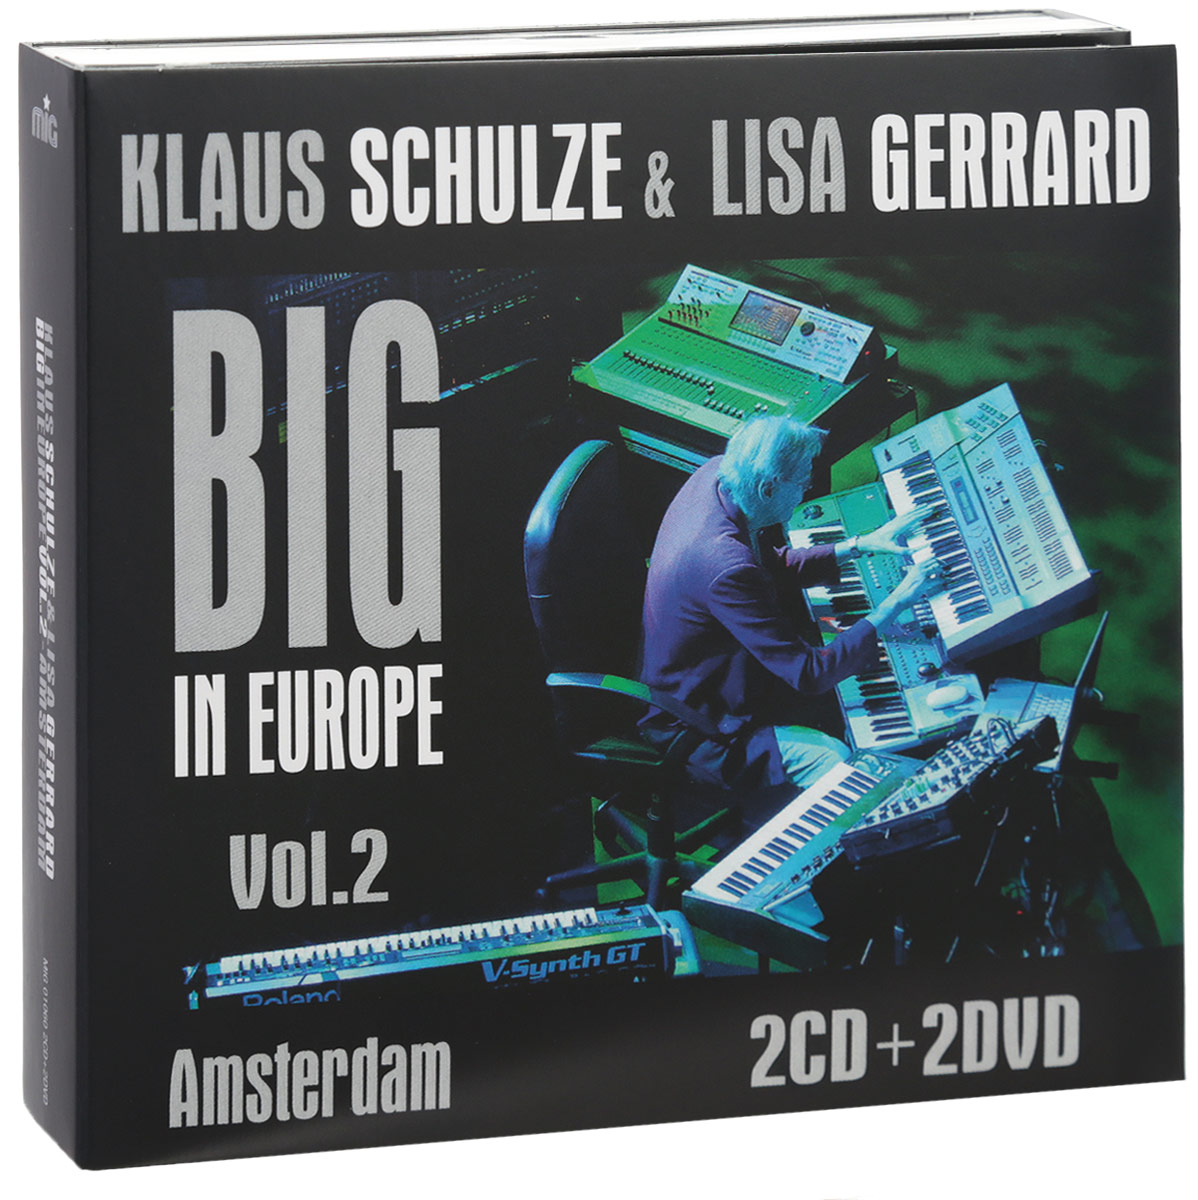 Клаус Шульце,Лайза Джеррард Klaus Schulze & Lisa Gerrard. Big In Europe Vol. 2. Amsterdam (2 CD + 2 DVD) rod serling twilight zone radio dramas vol 1 10 cd set